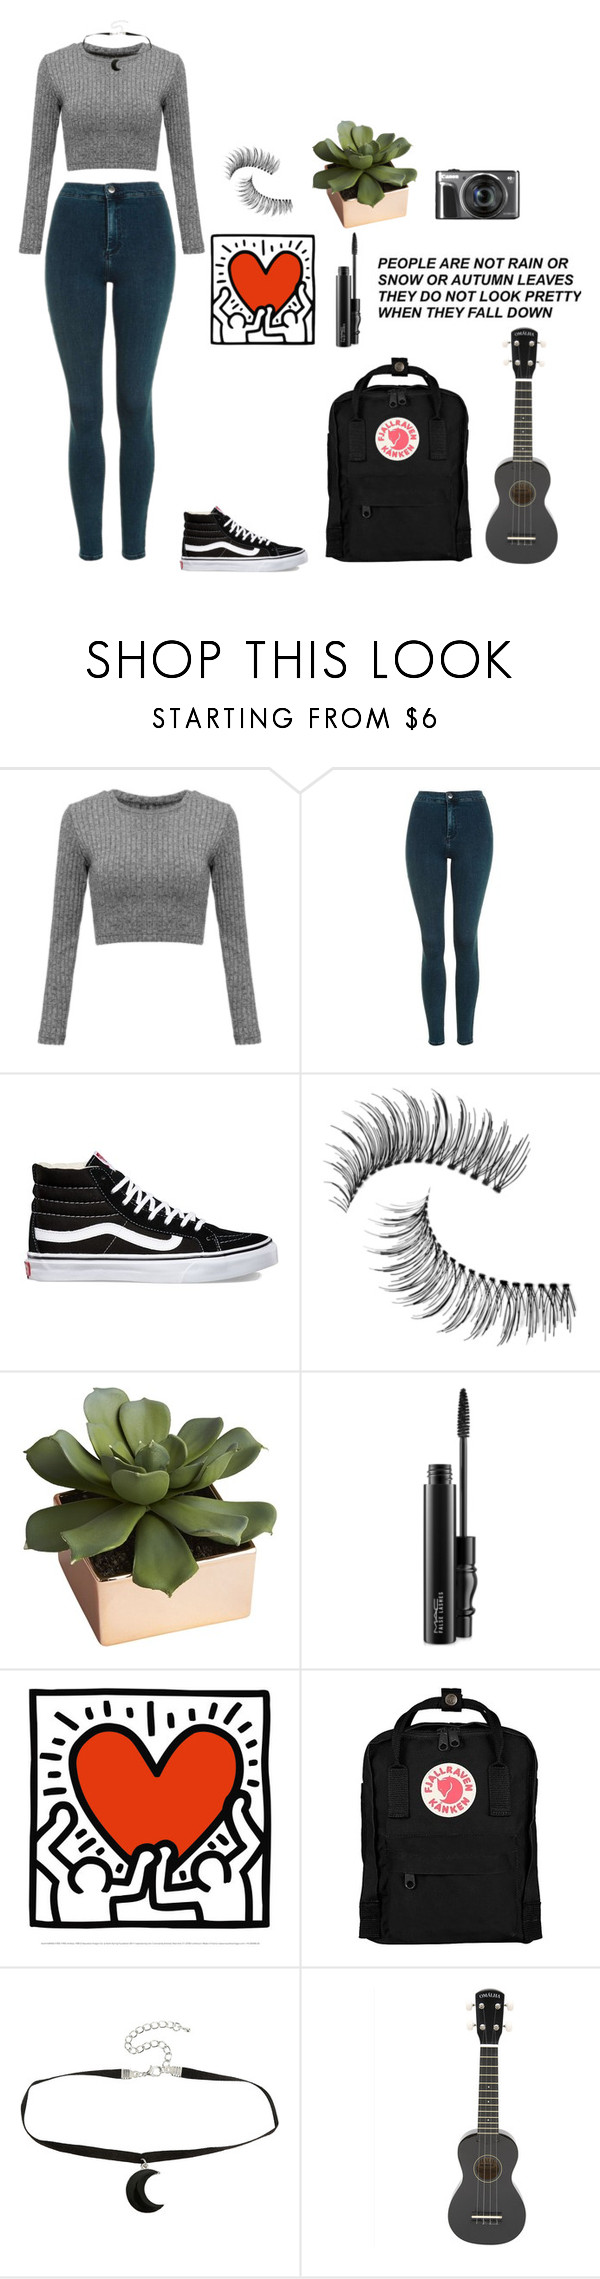 """""""Love is not a choice"""" by falienbulous ❤ liked on Polyvore featuring Topshop, Vans, Trish McEvoy, CB2, MAC Cosmetics, Fjällräven, grey, hyuna and ComingOut"""